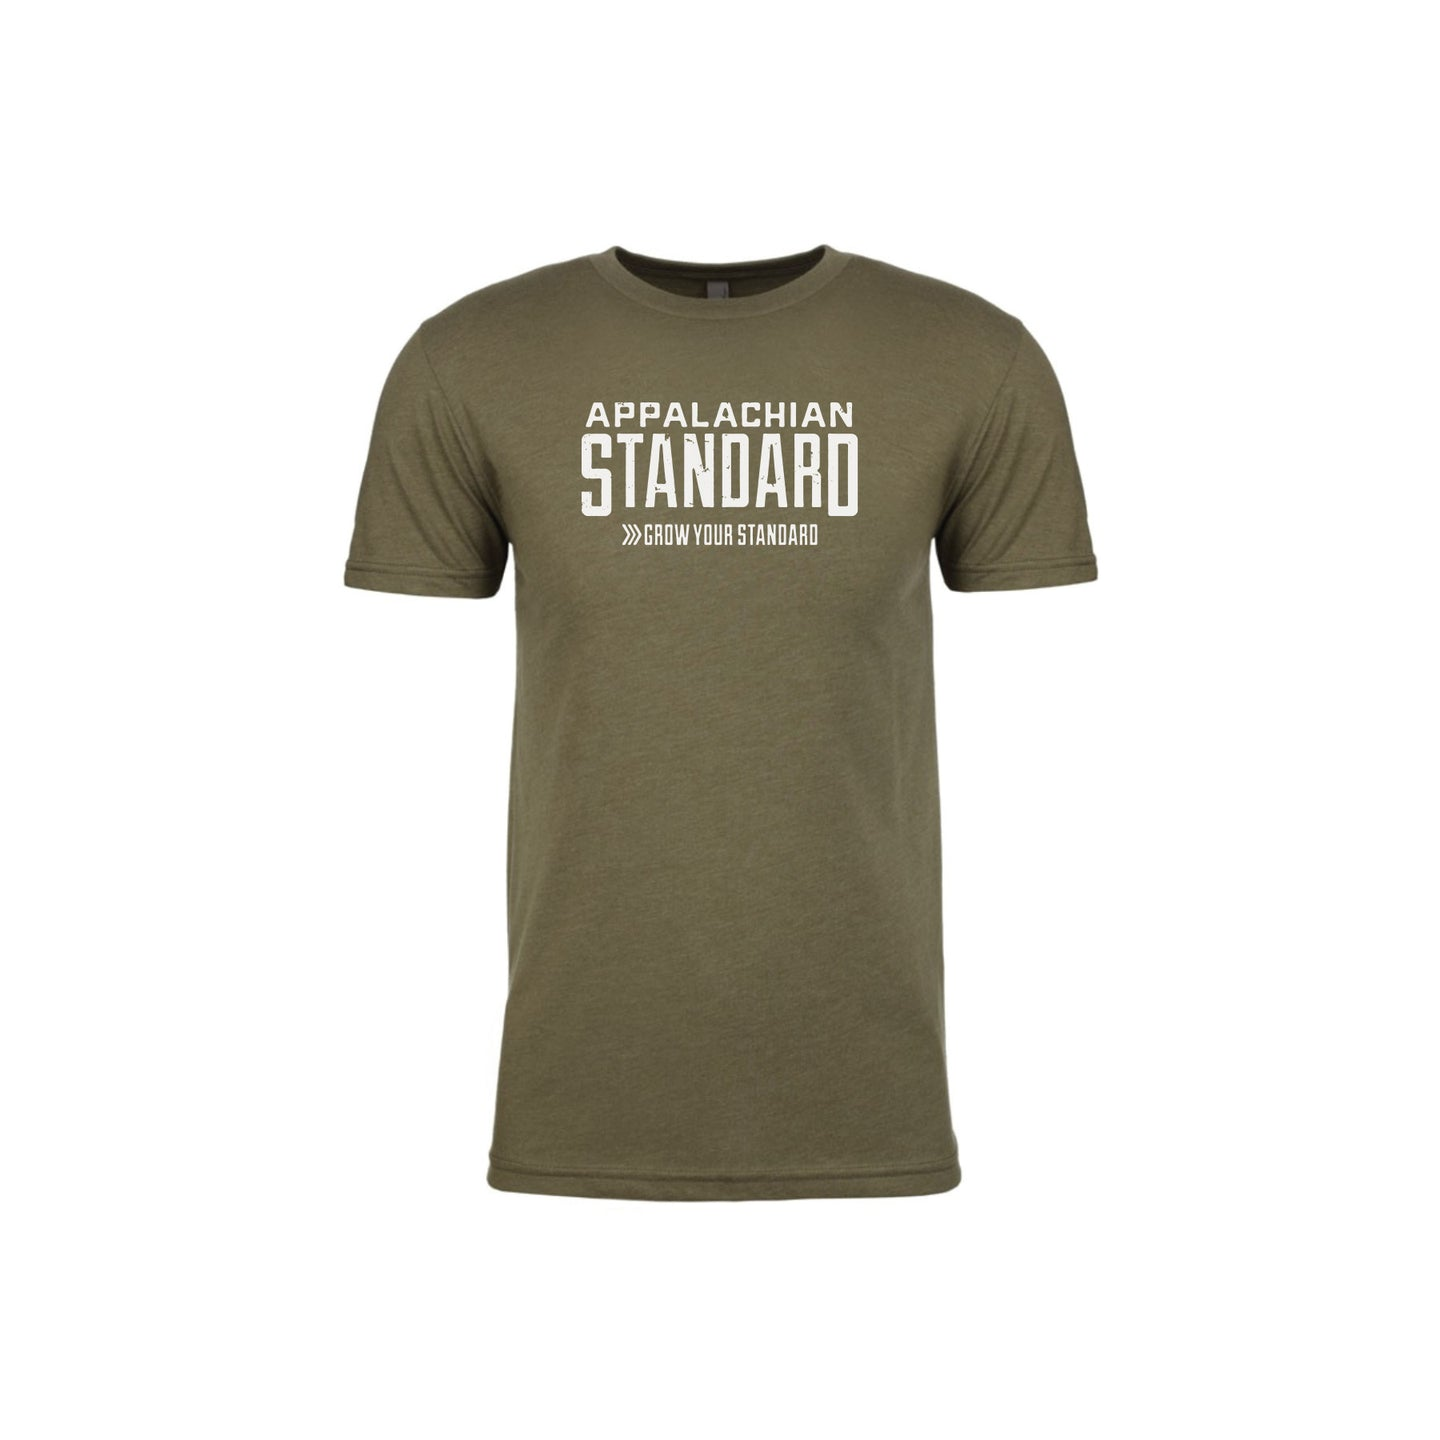 Appalachian Standard Unisex Short Sleeved Tee- Military Green Version 2.0